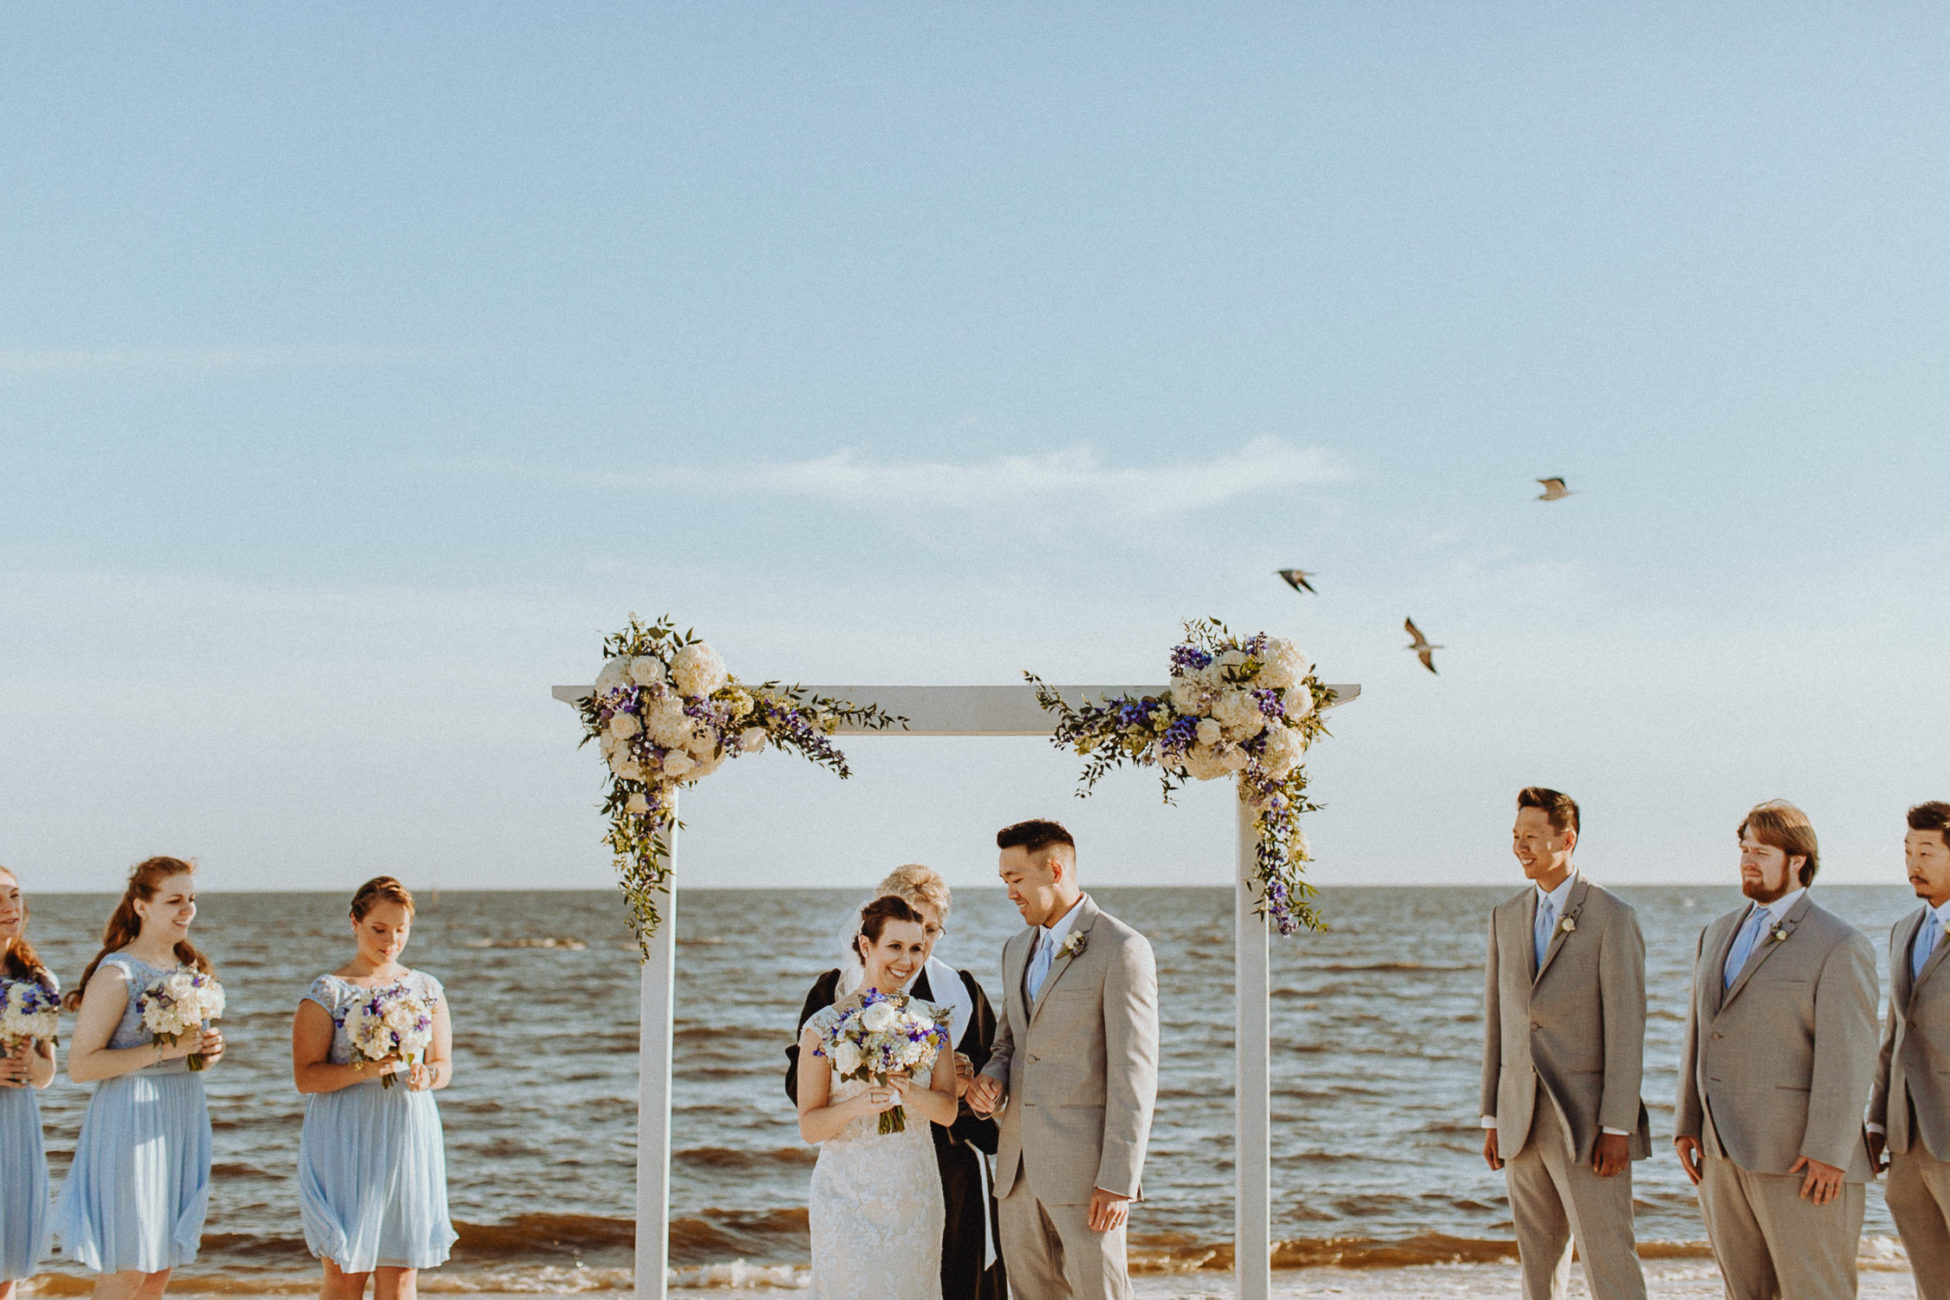 Biloxi Beach wedding ceremony with birds flying in the background